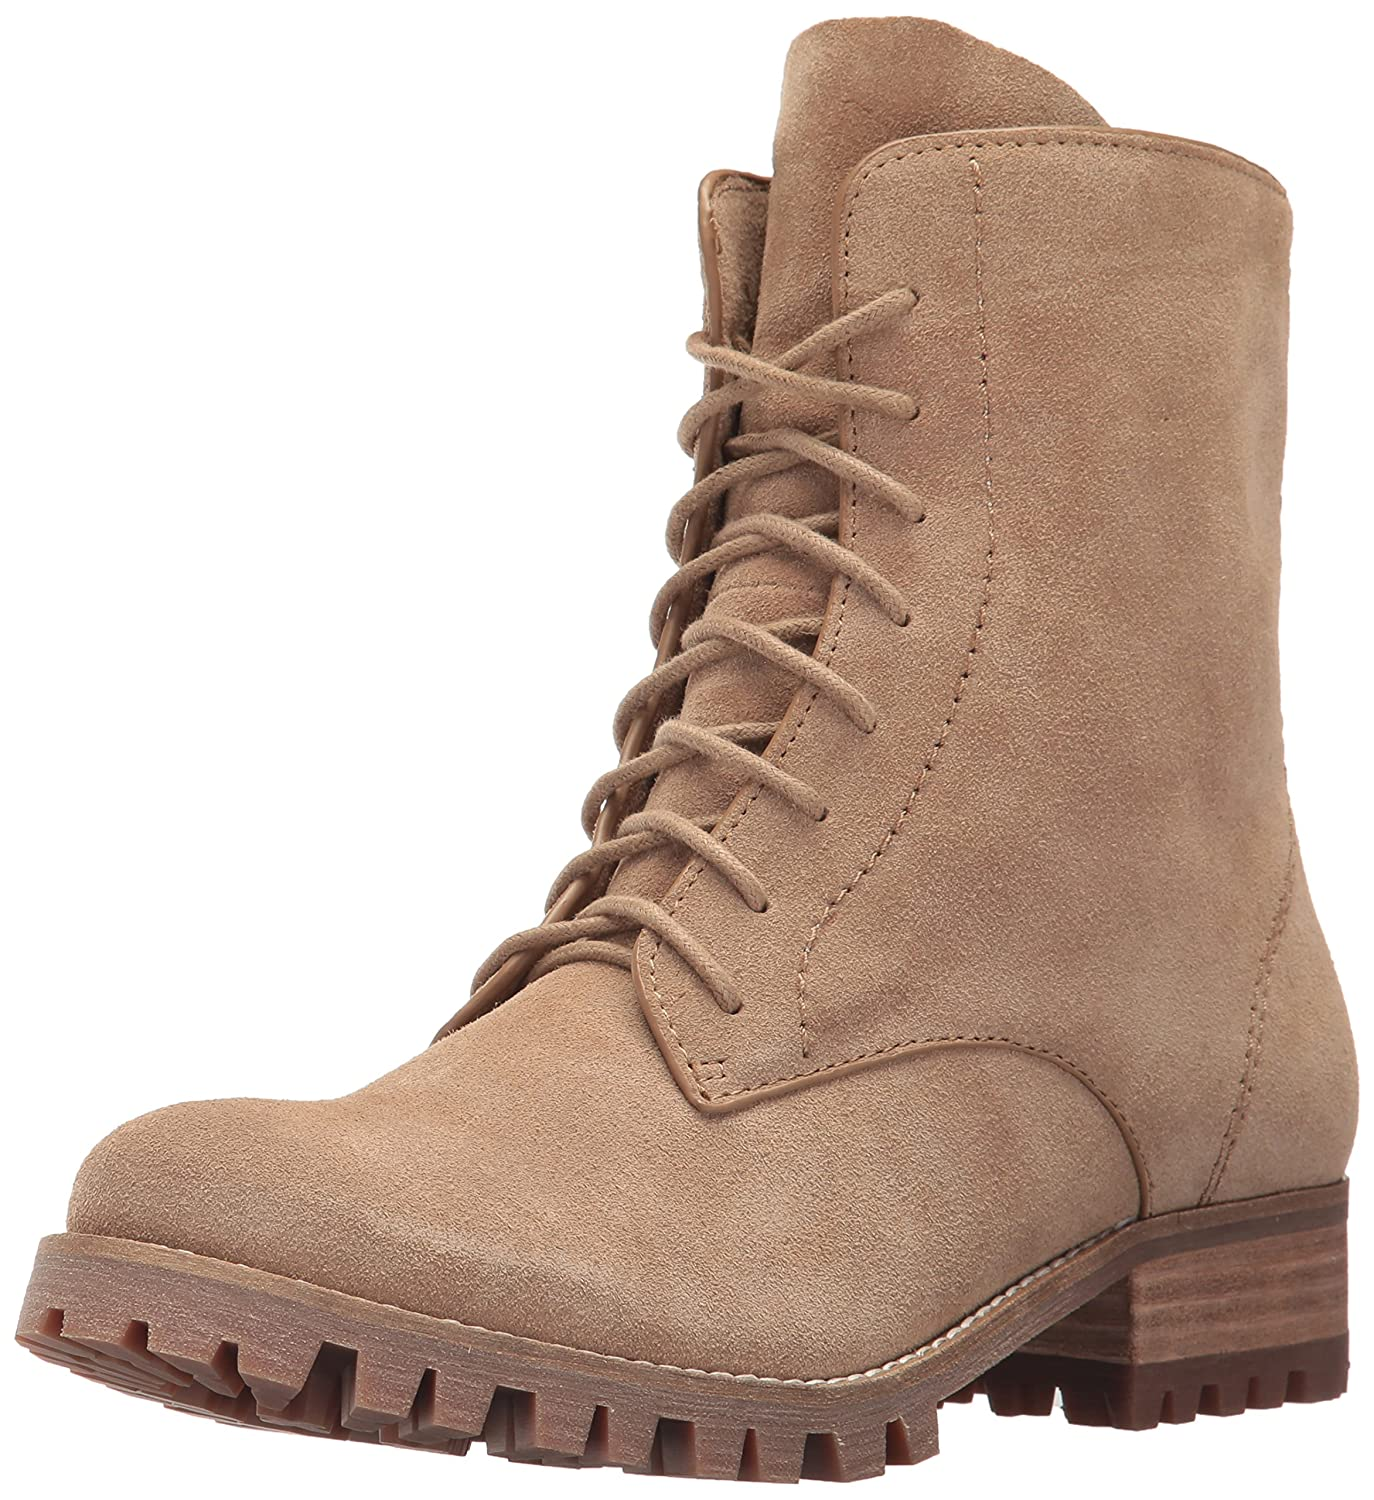 SplendidHome Women's Romy Combat Boot B071Y3JHSH 6 M US|Taupe